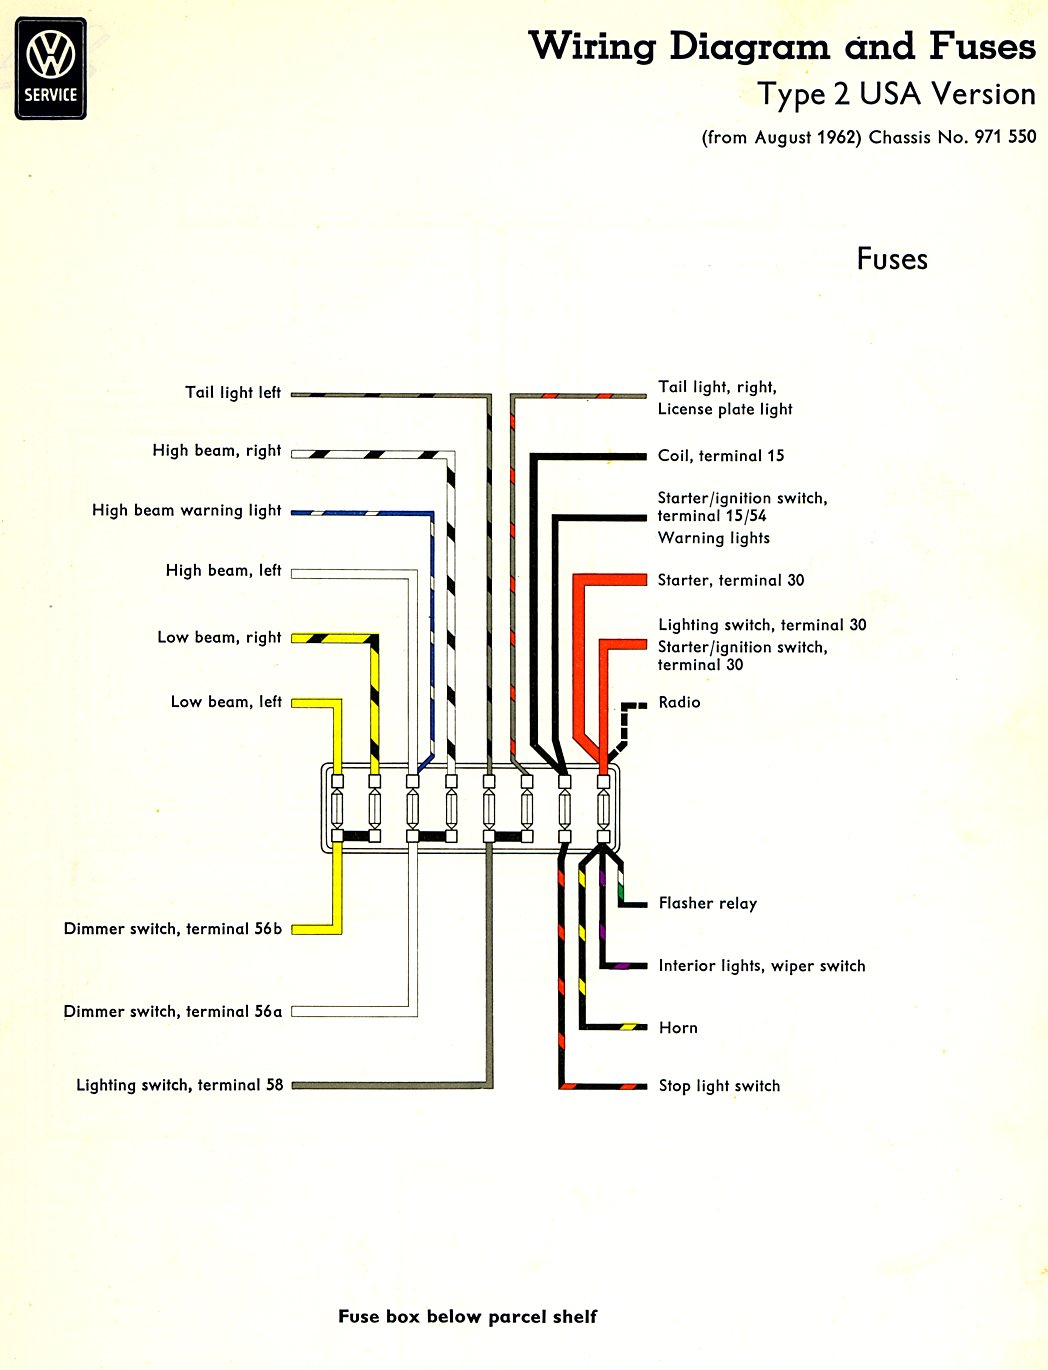 bus_63_USA_fuses thesamba com type 2 wiring diagrams 72 vw bus wiring diagram at alyssarenee.co